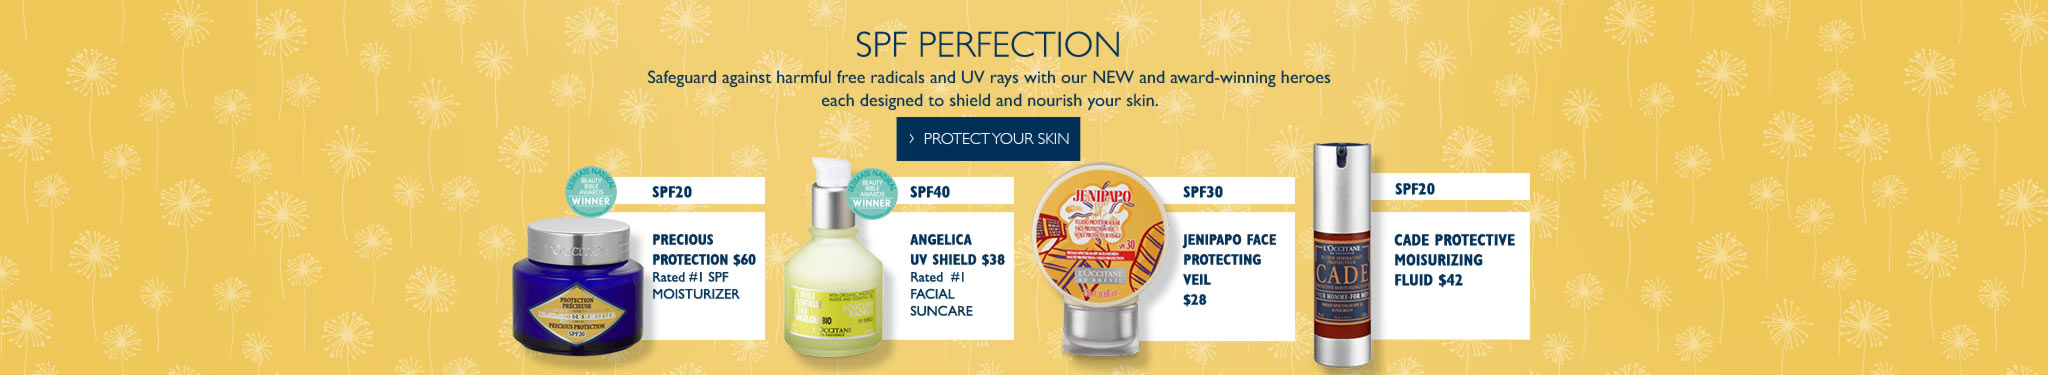 SPF Protection! Safeguard against harmful free radicals and UV rays with our NEW and award-winning heroes each designed to shield and nourish your skin